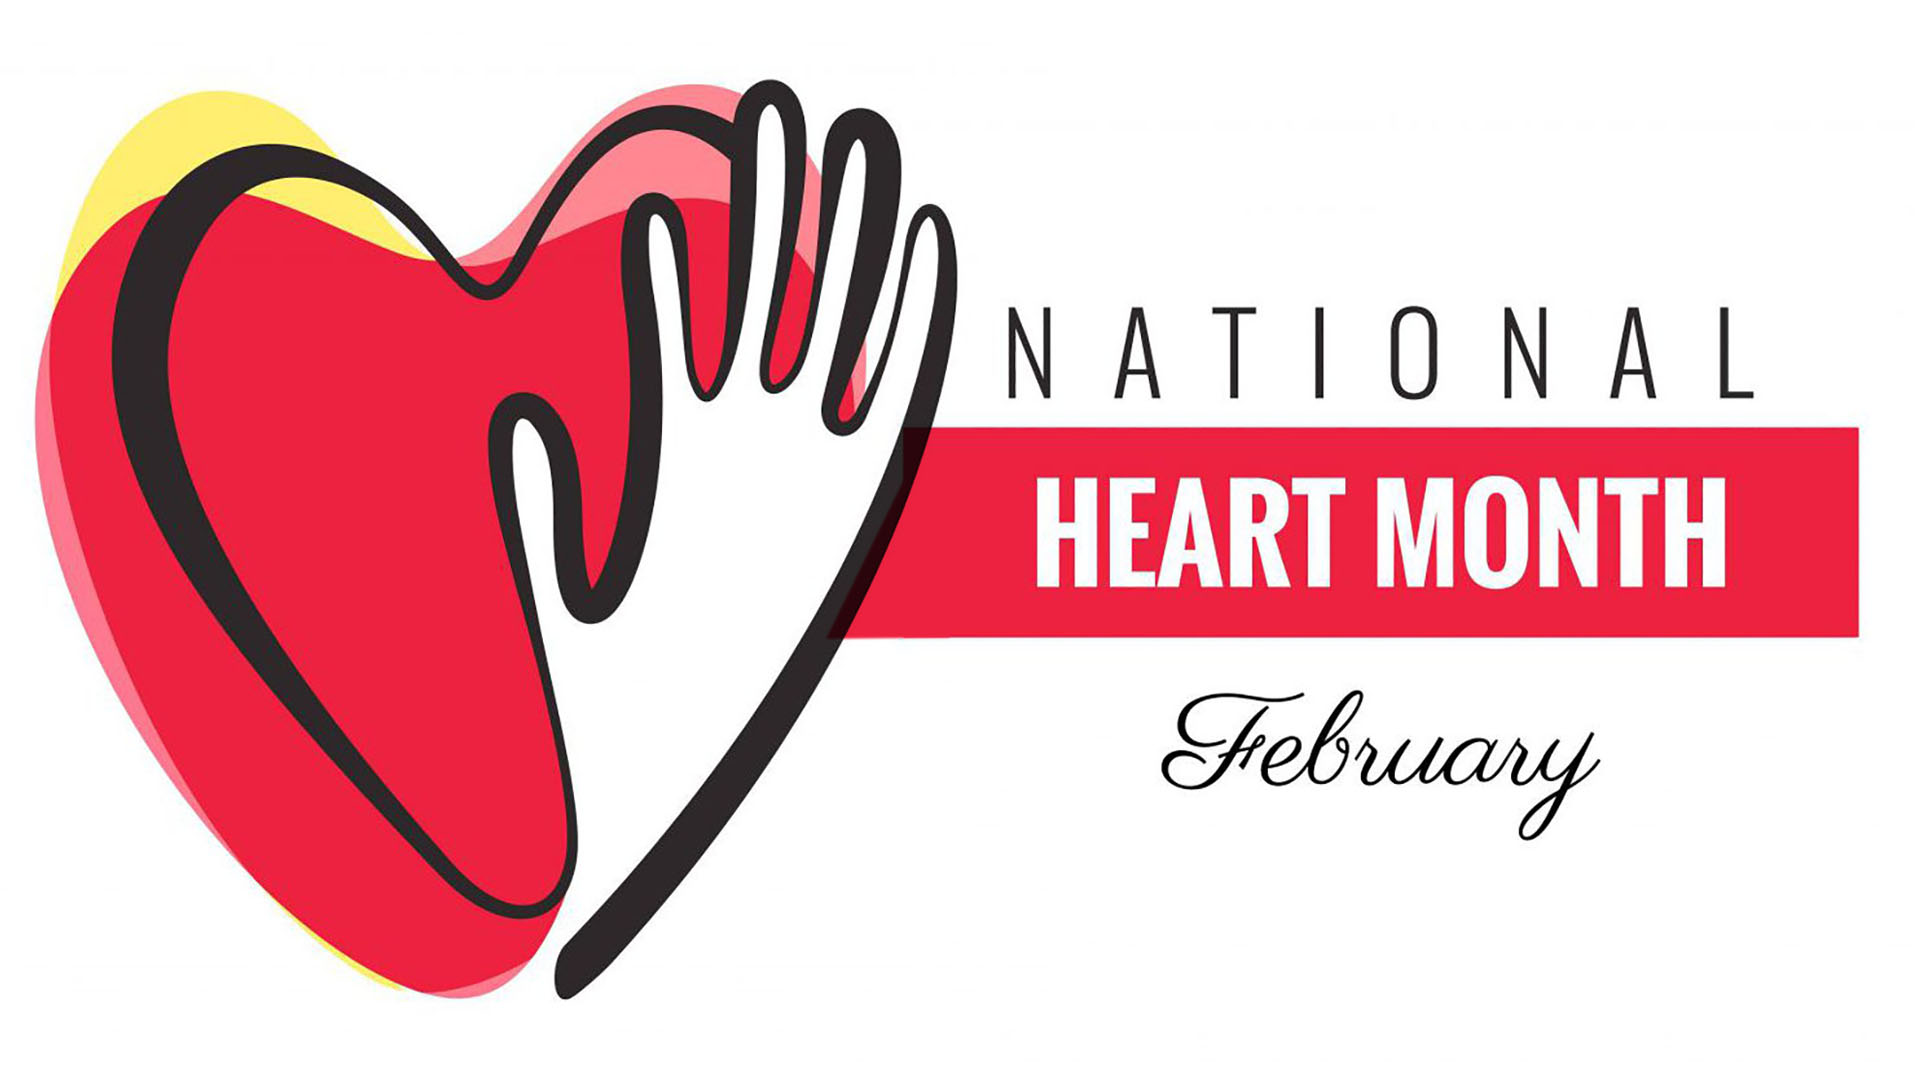 February National Heart Month Digital Signage Graphic 1